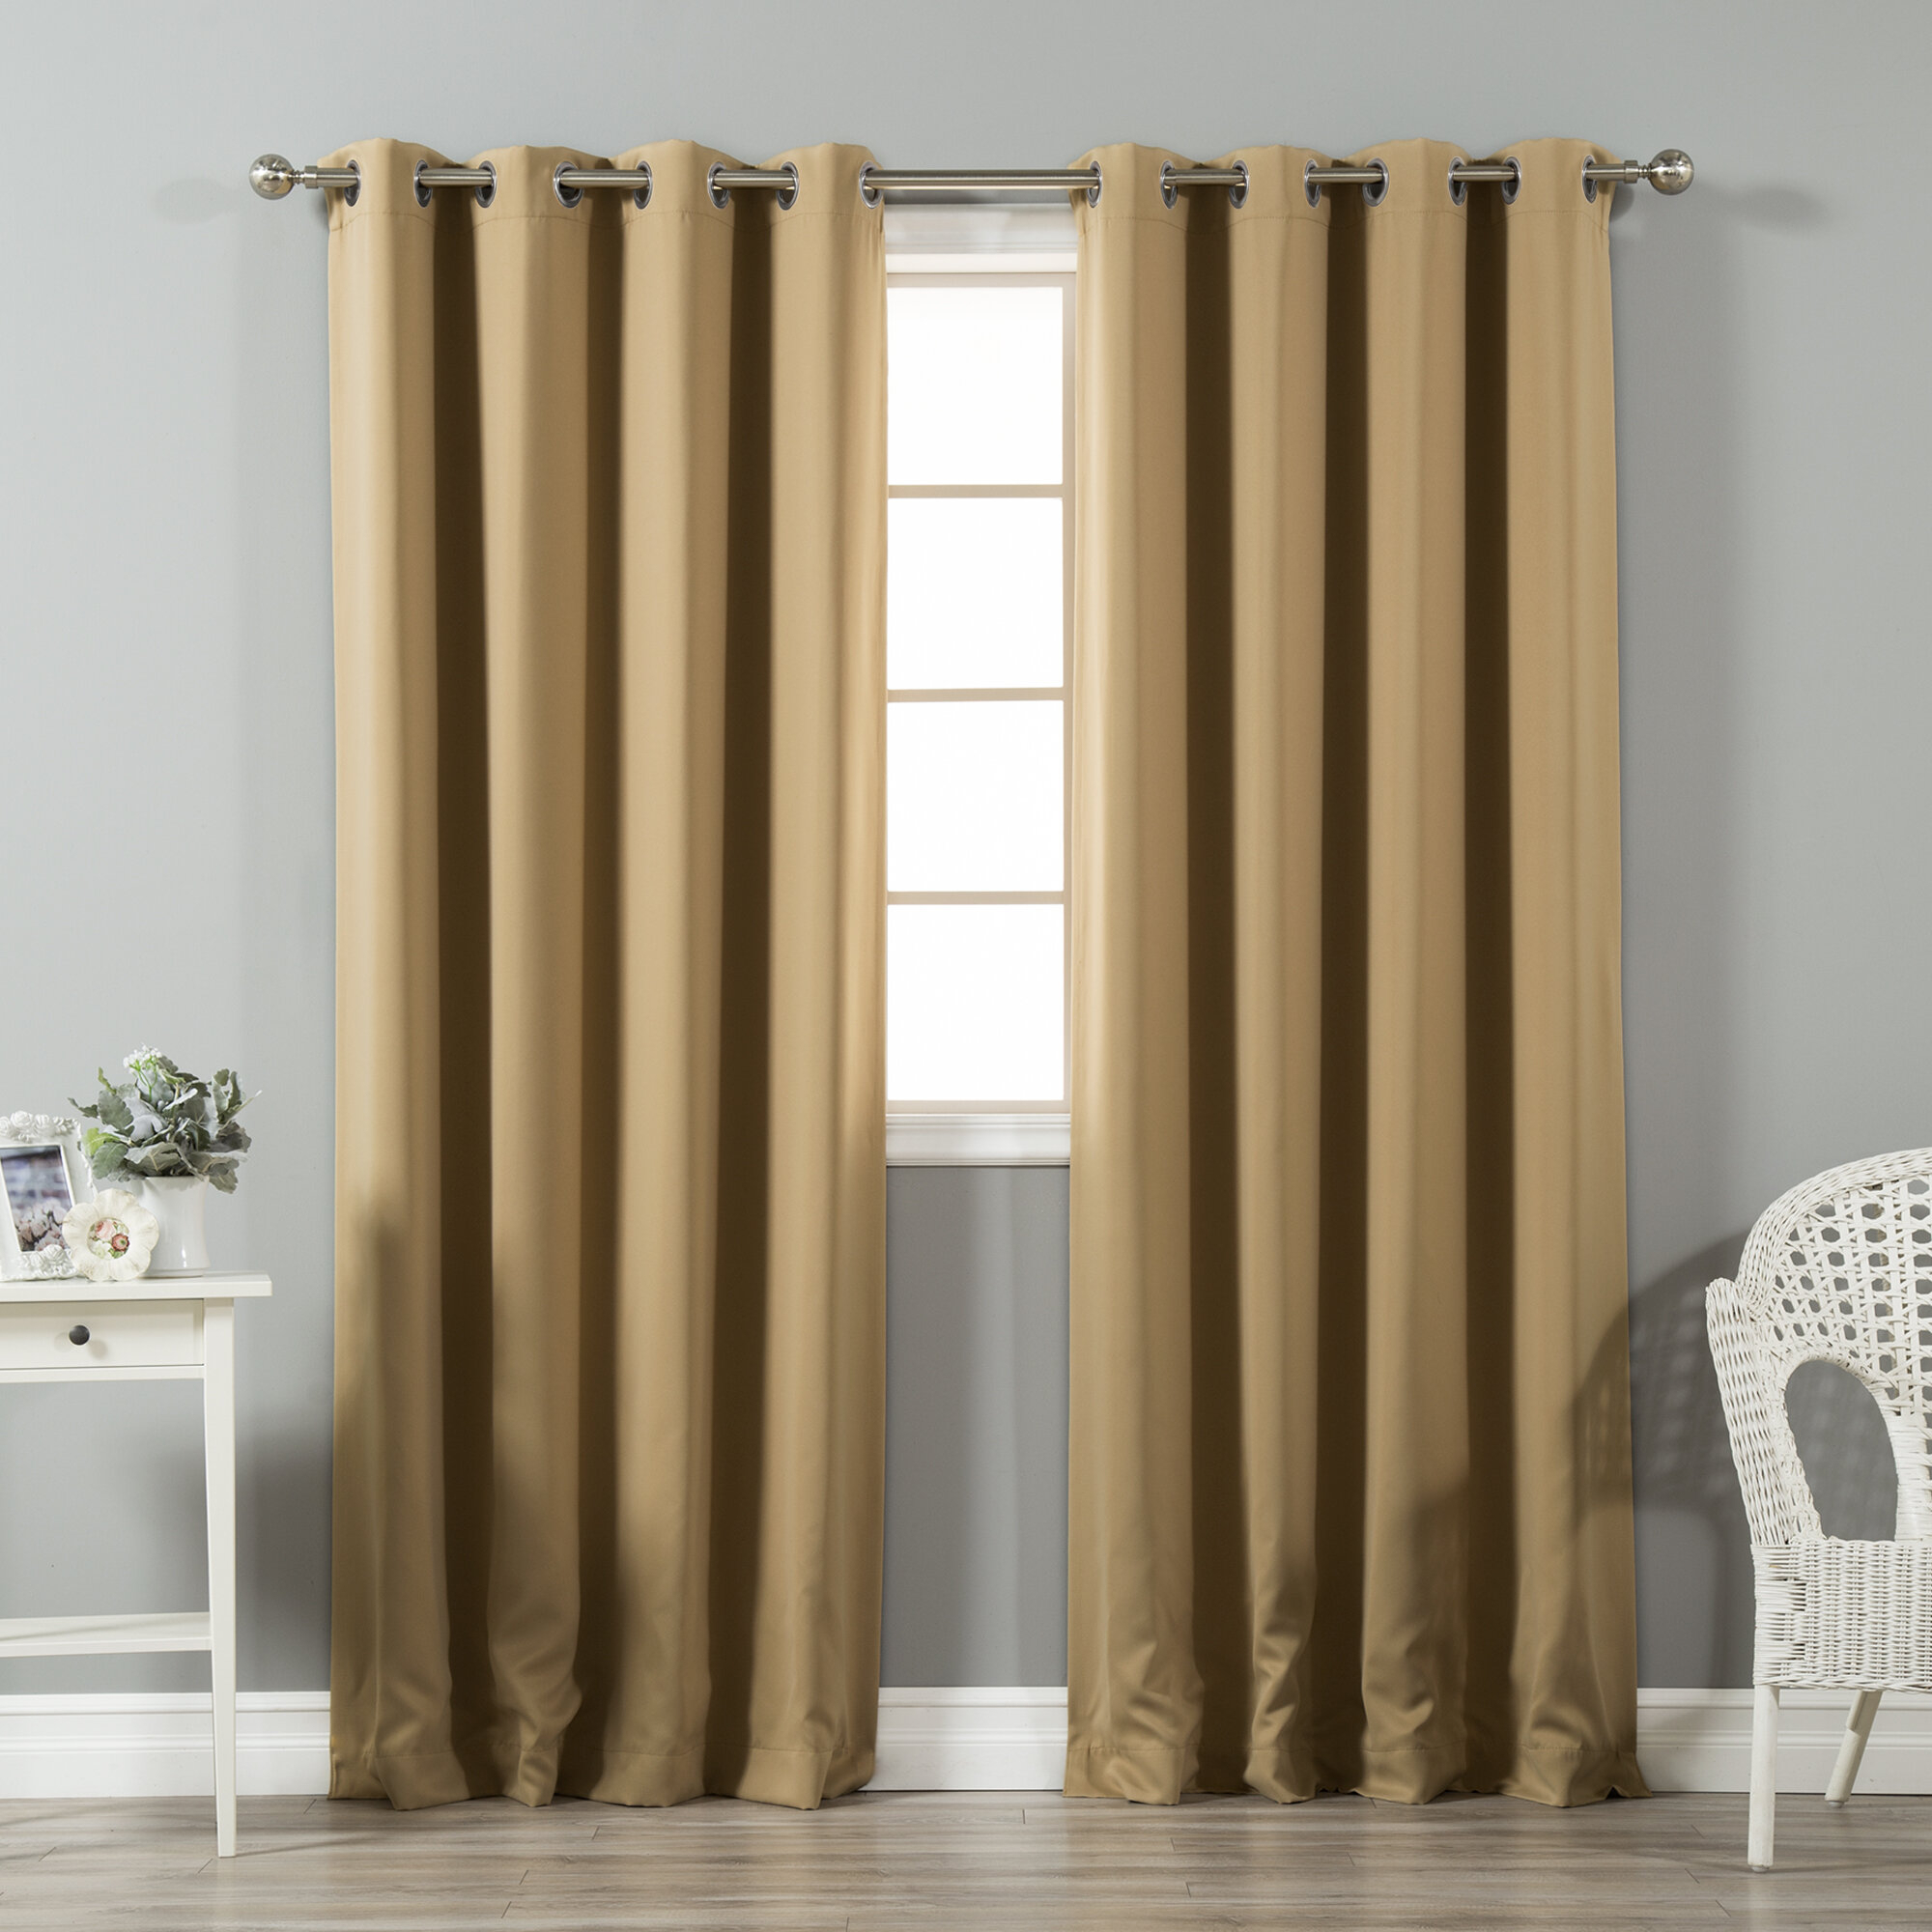 Prudence Solid Blackout Thermal Grommet Curtain Panel Throughout Solid Insulated Thermal Blackout Curtain Panel Pairs (View 14 of 30)